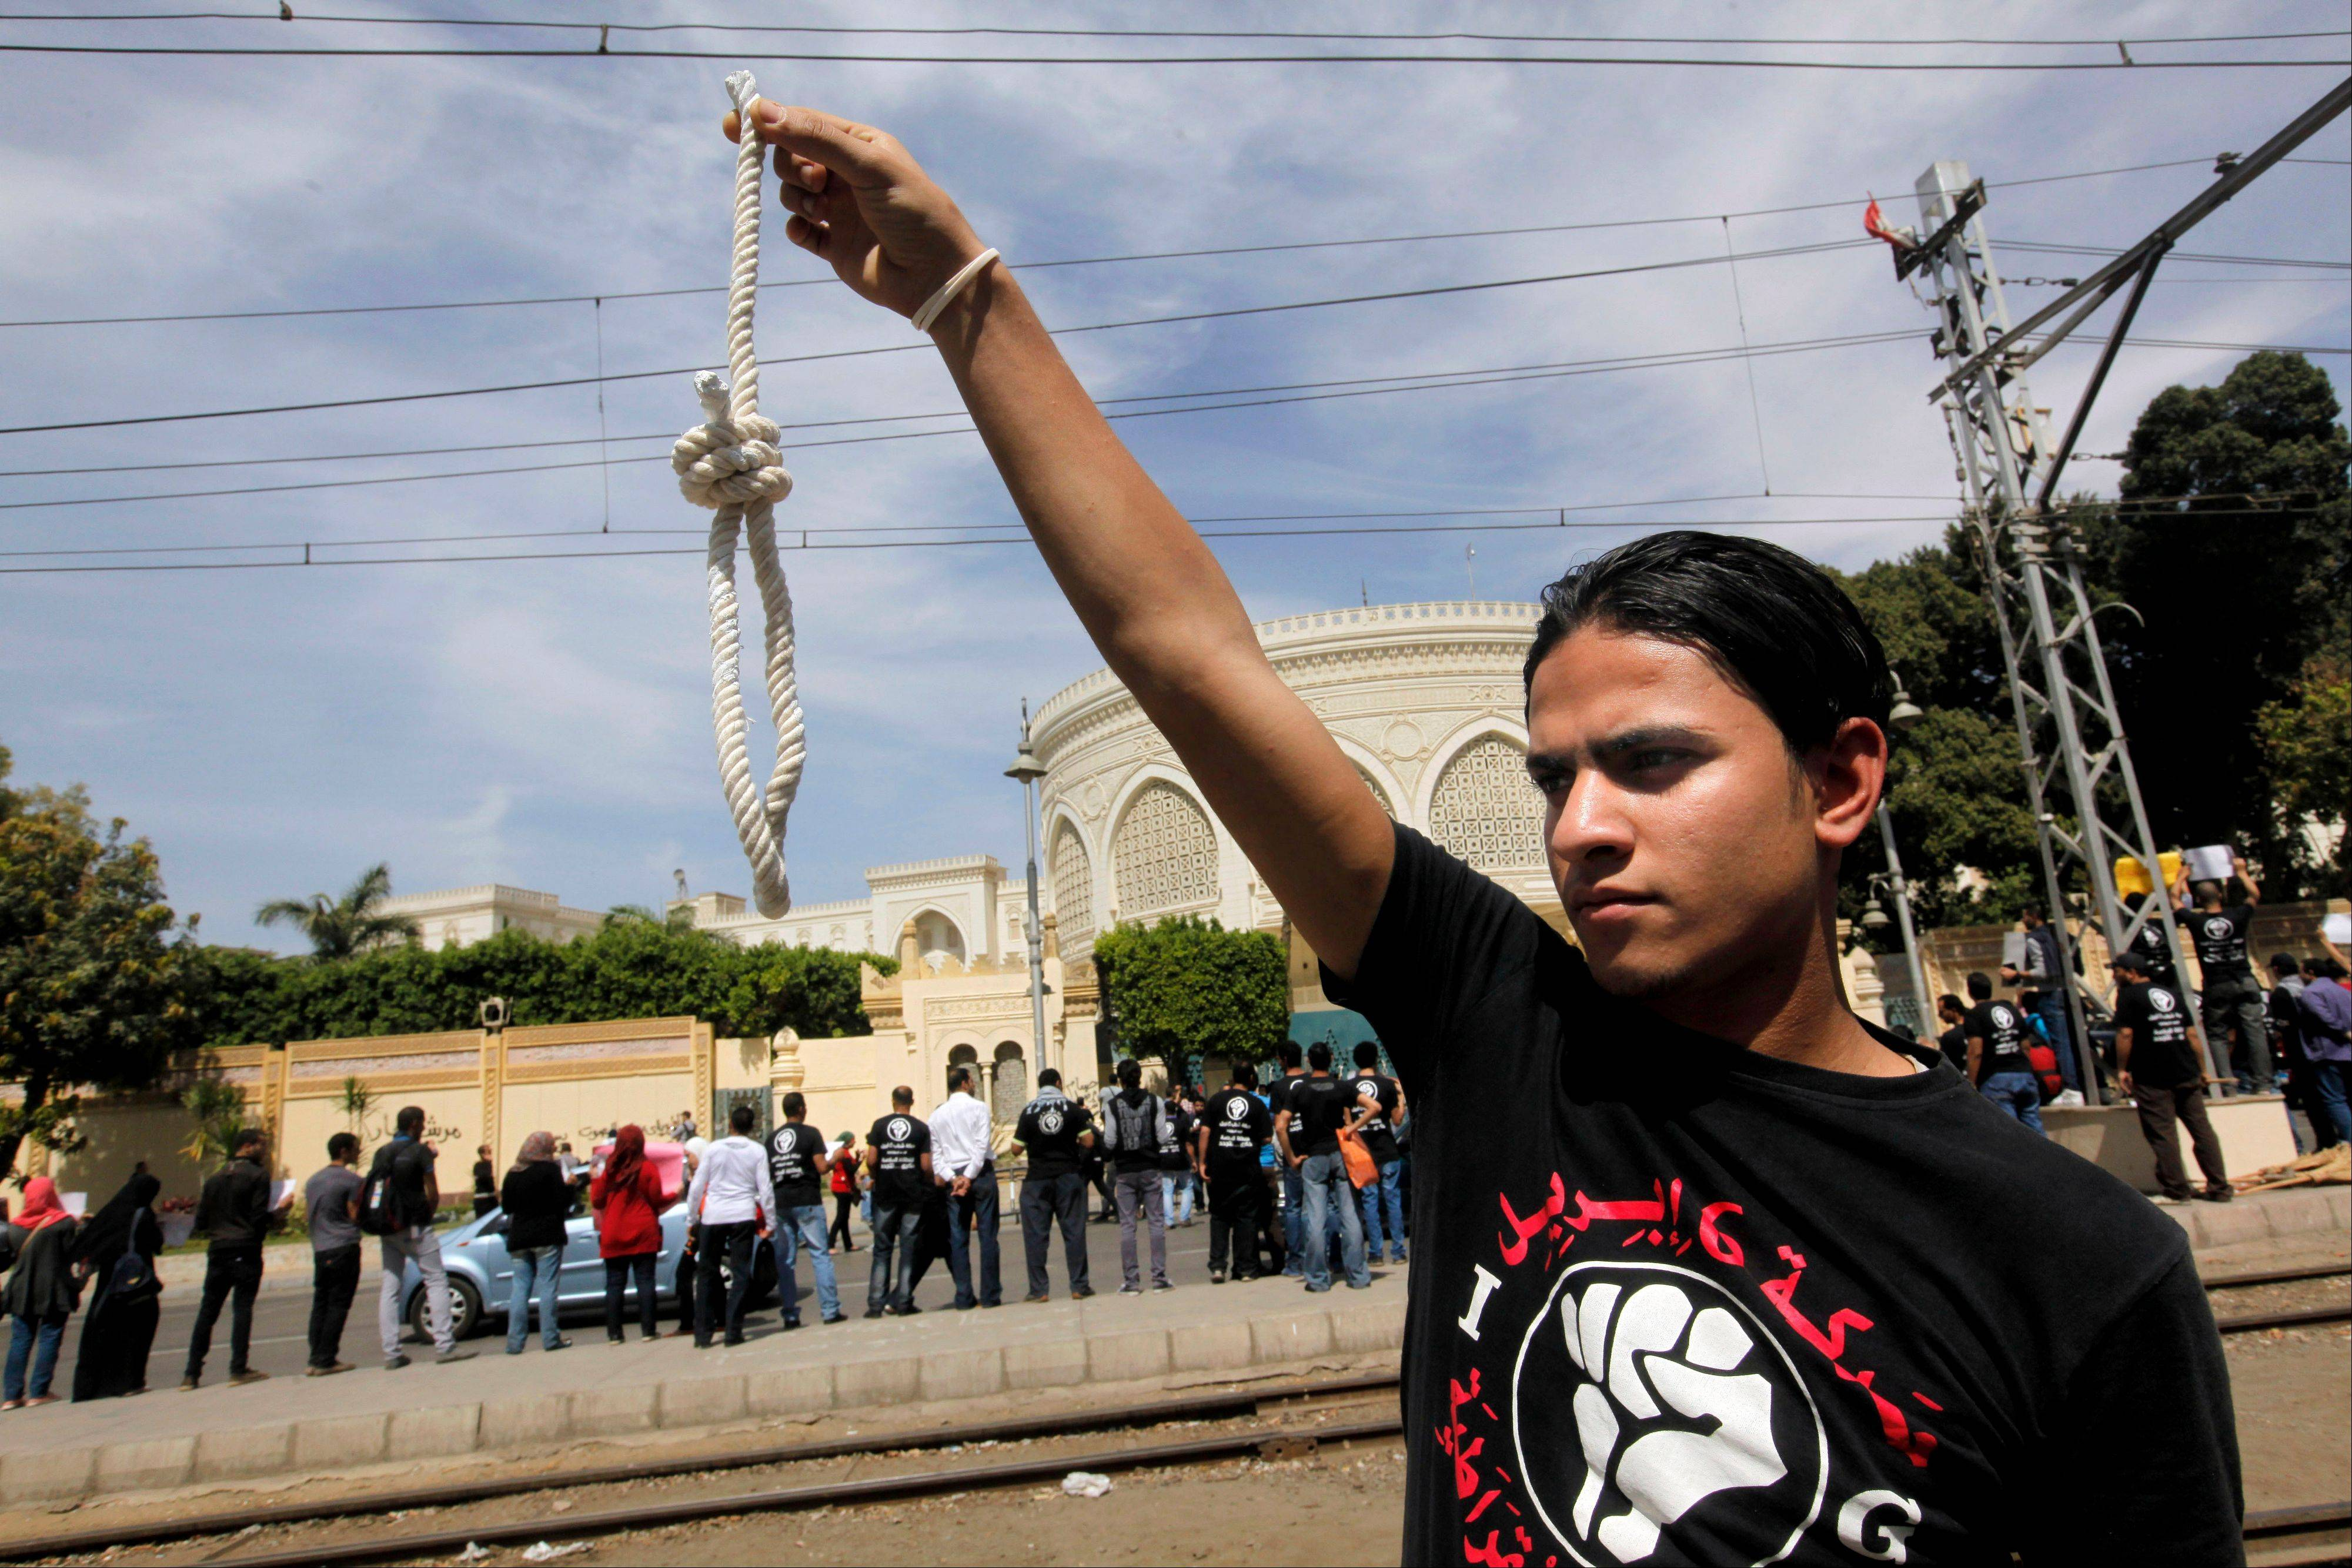 Associated PressA member of Egypt's April 6 Youth Movement holds a noose in front of the presidential palace in Cairo, Egypt, Saturday, April 6. The group is rallying to mark its fifth anniversary and to protest against President Mohammed Morsi.